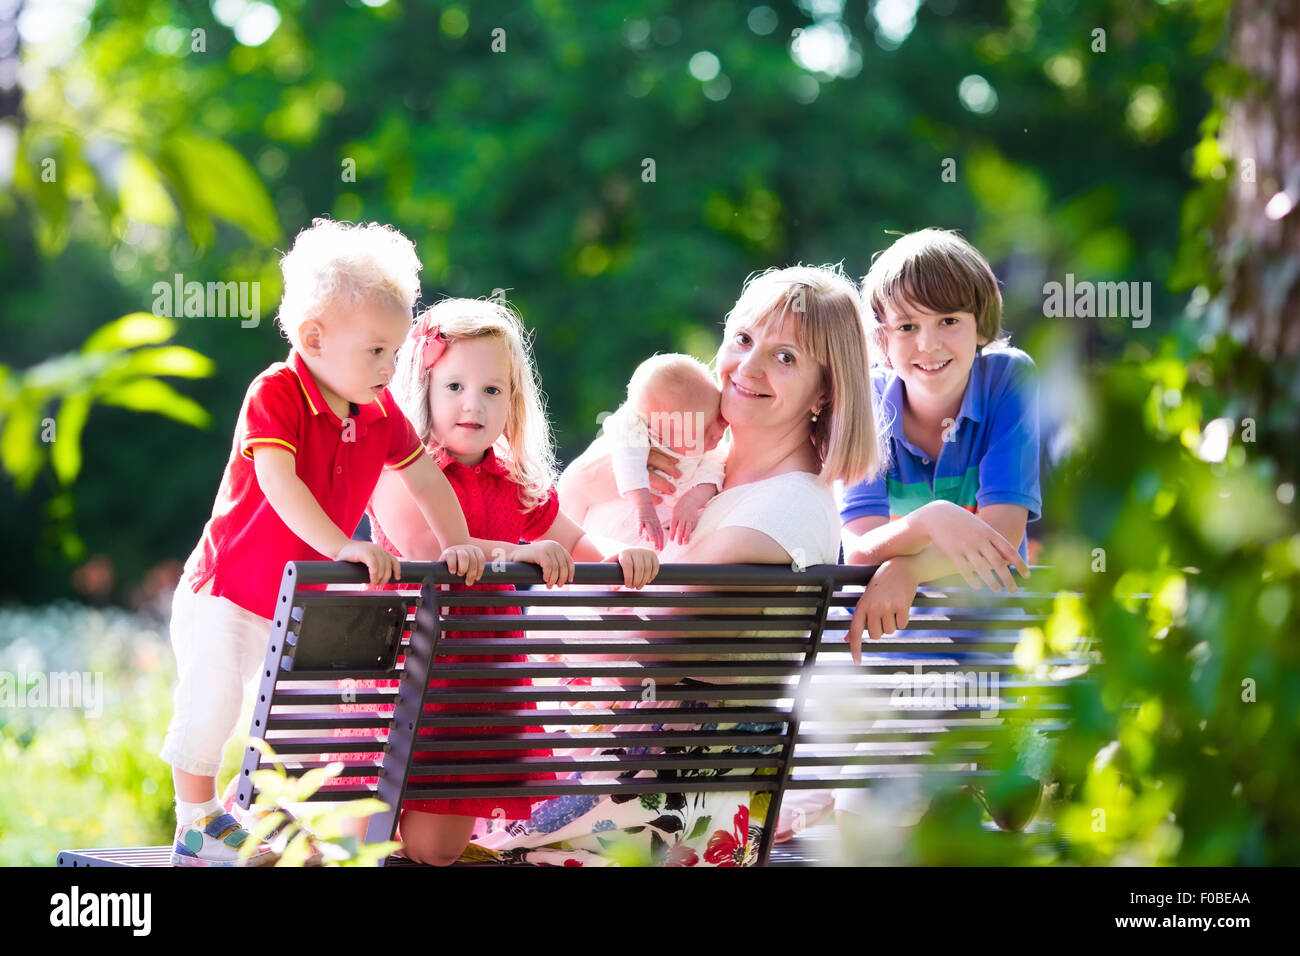 Grandmother And Grandchildren Enjoying Picnic In A Park